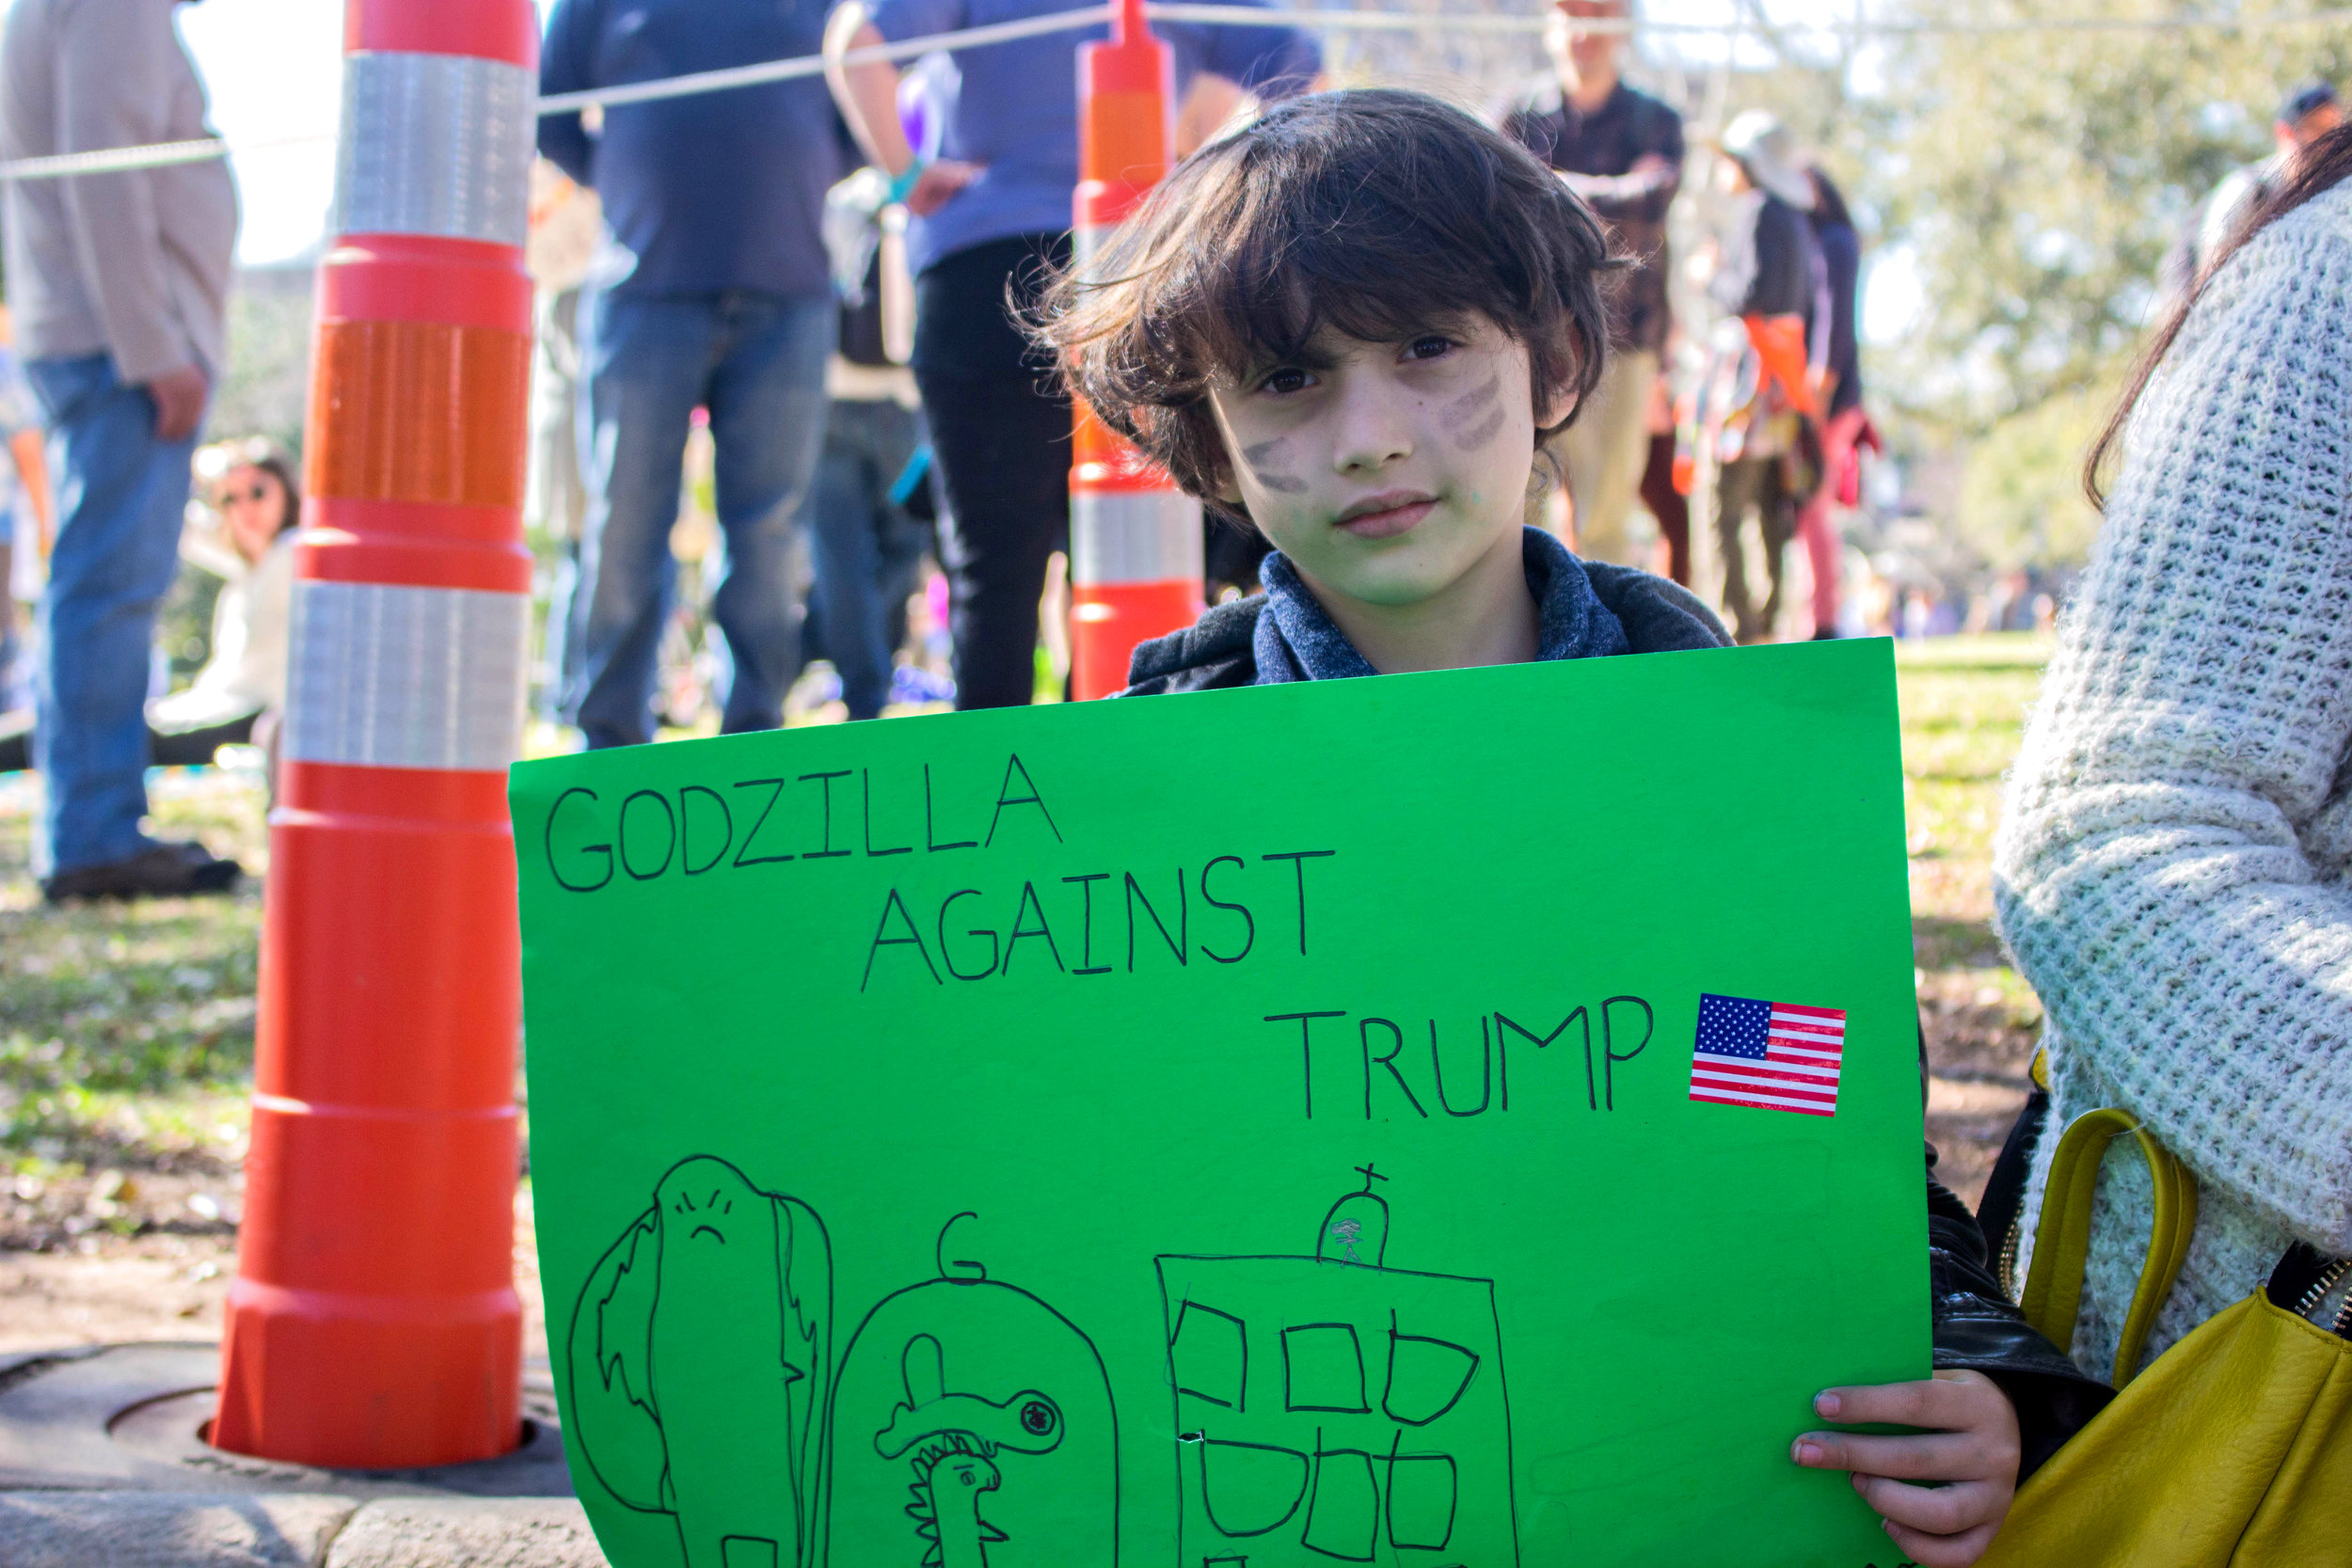 """Leo Acton holds a green sign that says, """"Godzilla against Trump"""" at the """"No Ban, No Wall rally on Saturday."""